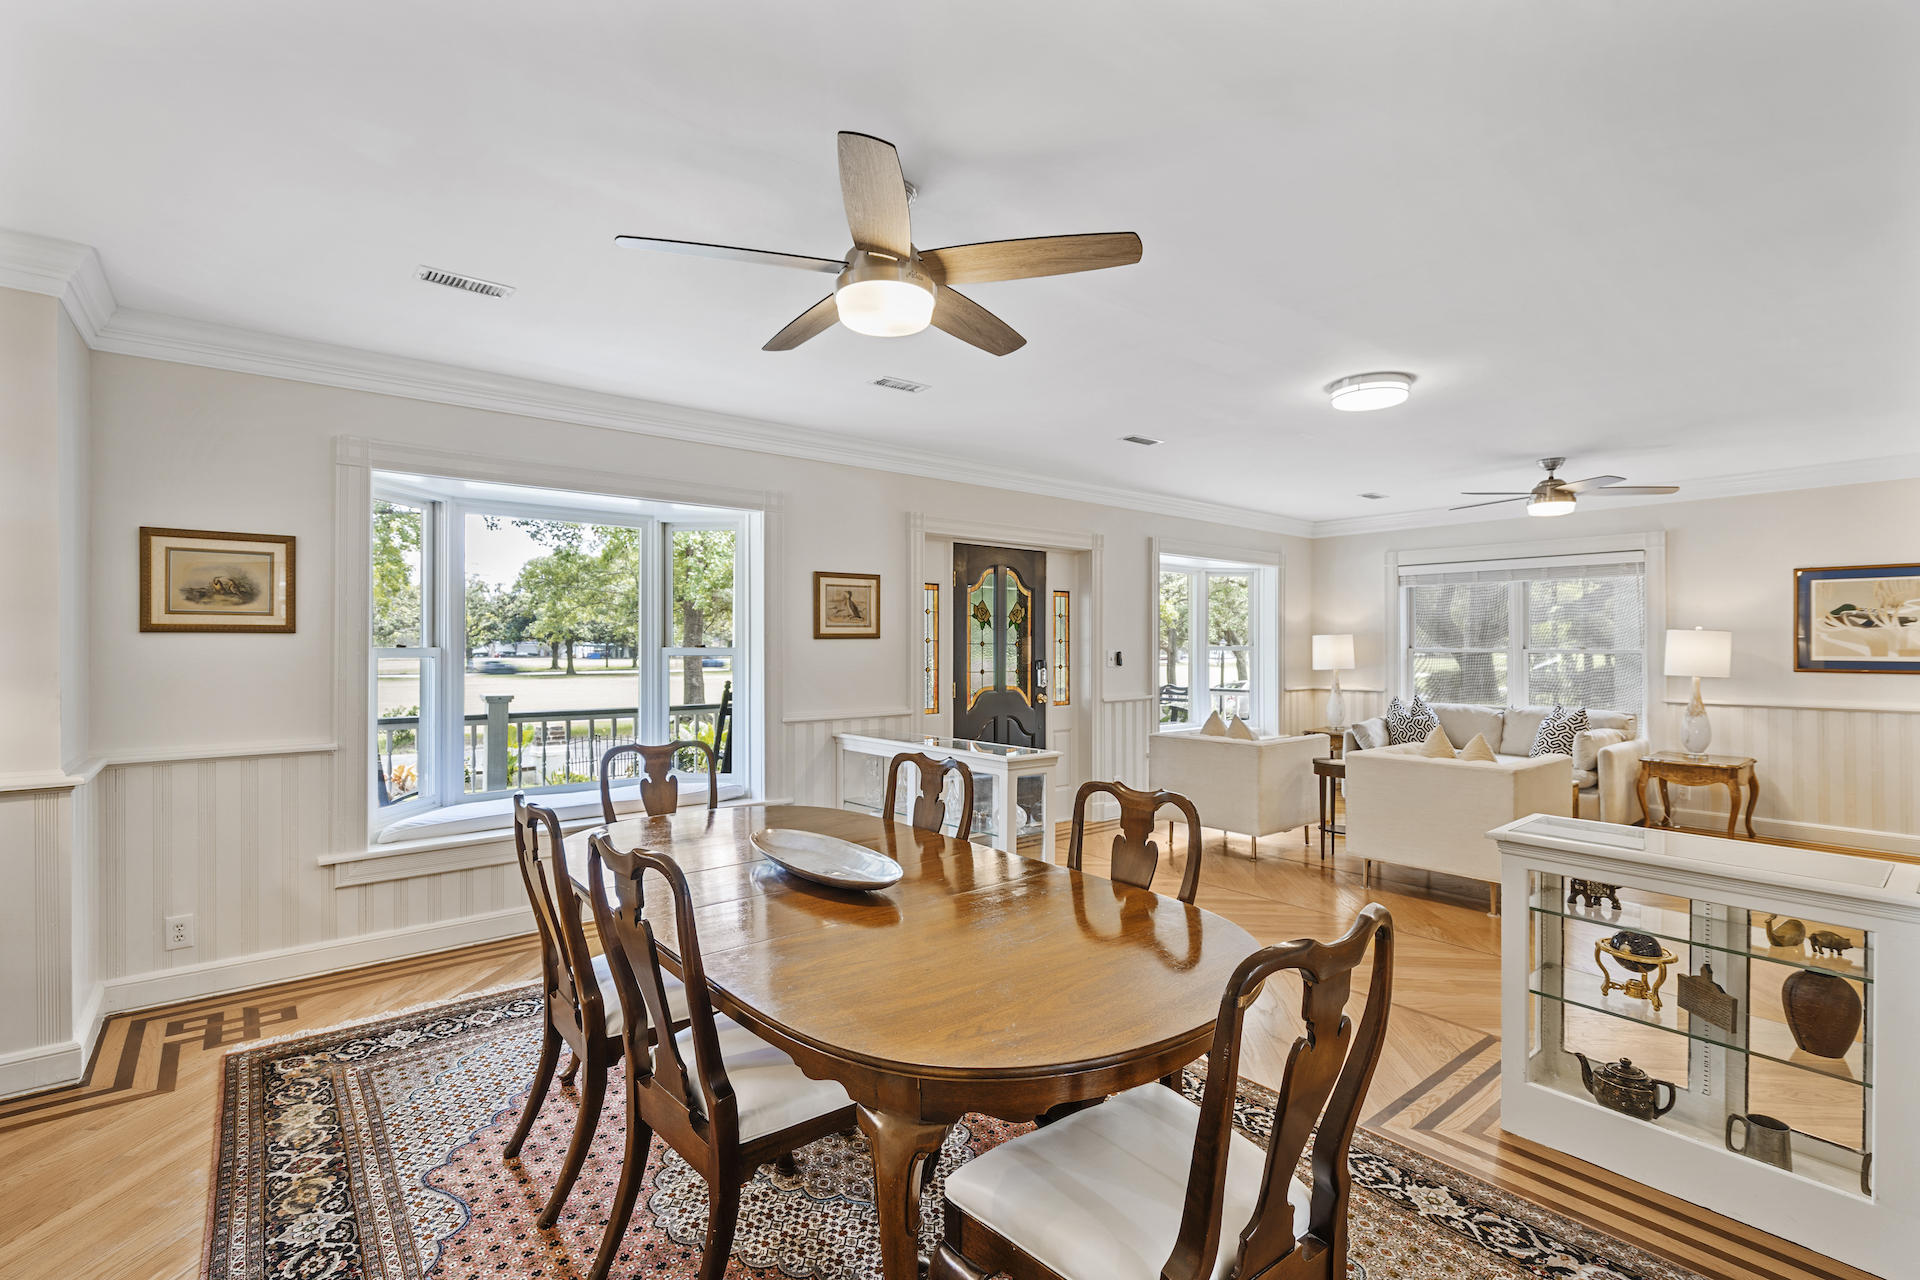 Riverland Terrace Homes For Sale - 2142 Golfview, Charleston, SC - 9